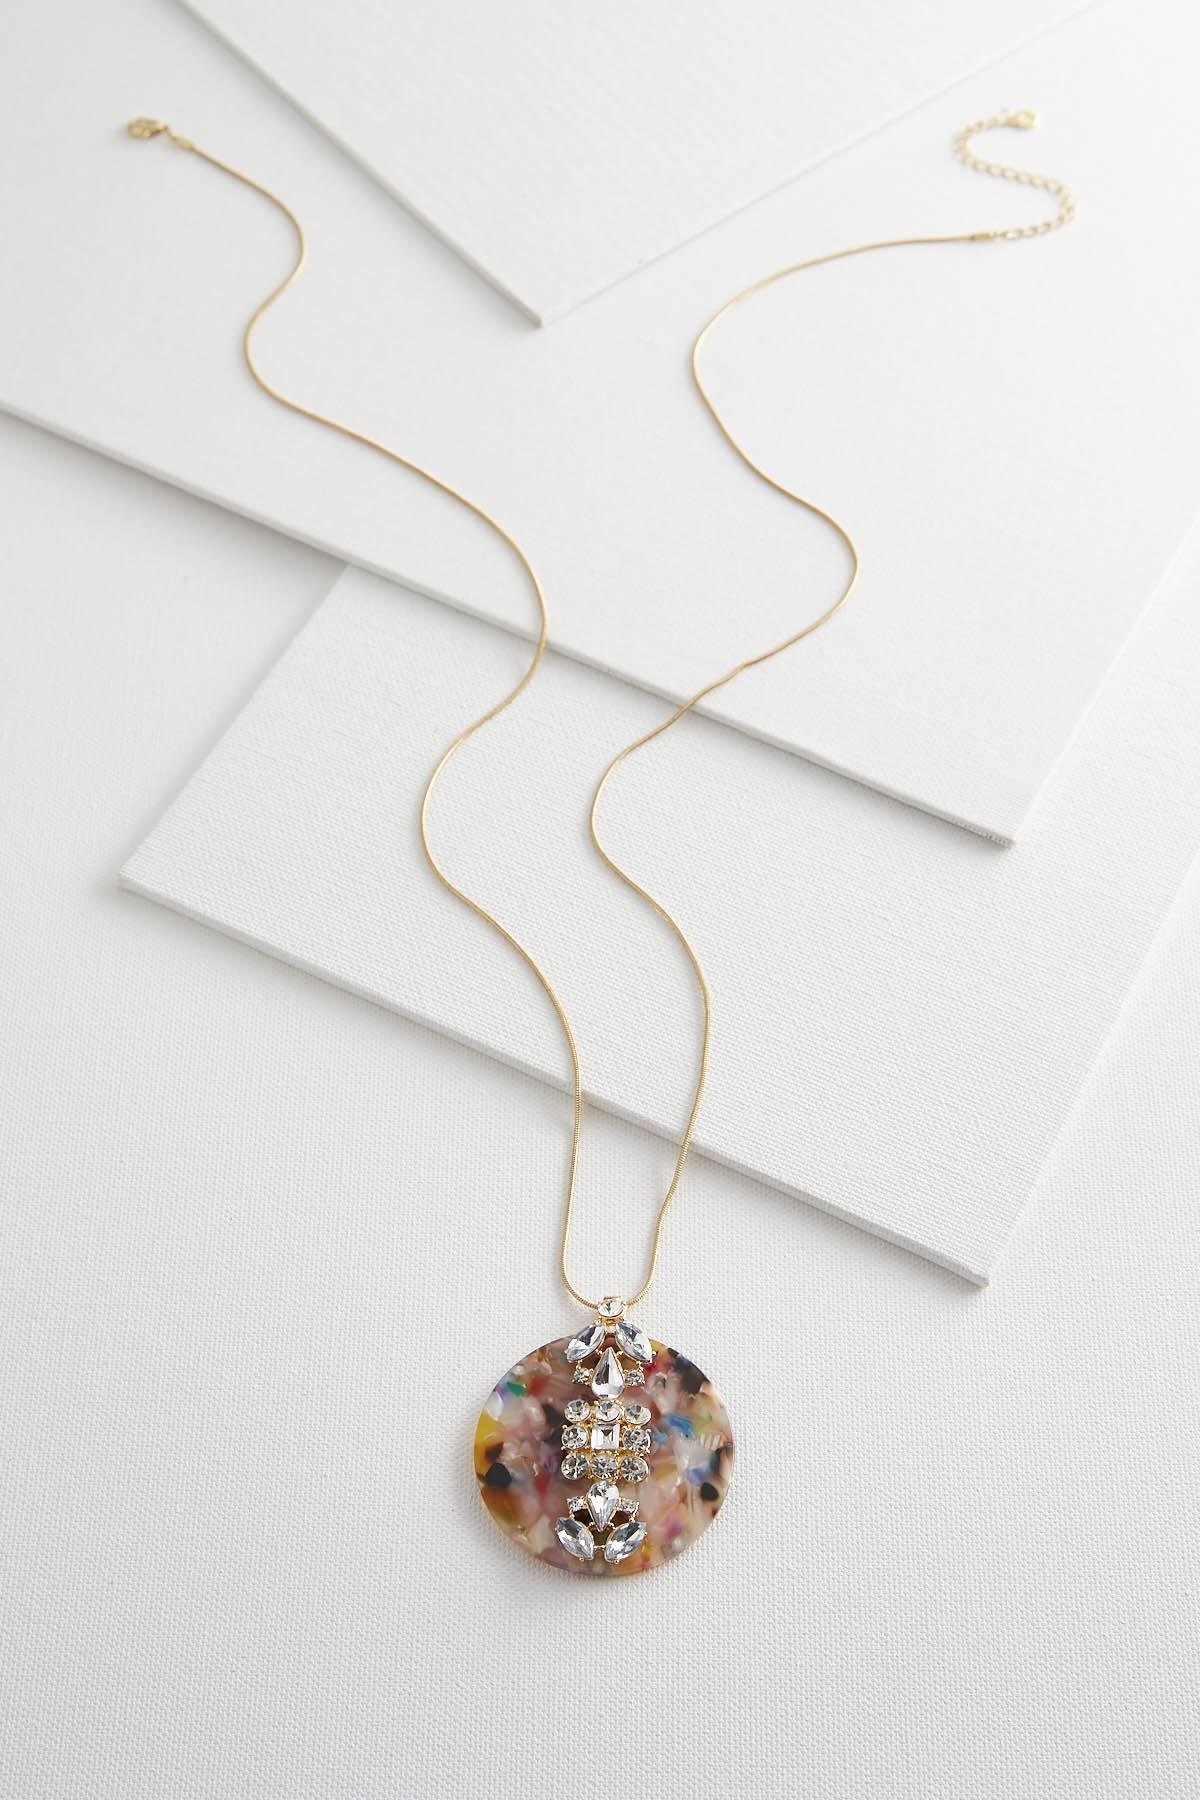 Marbled Resin Circle Pendant Necklace